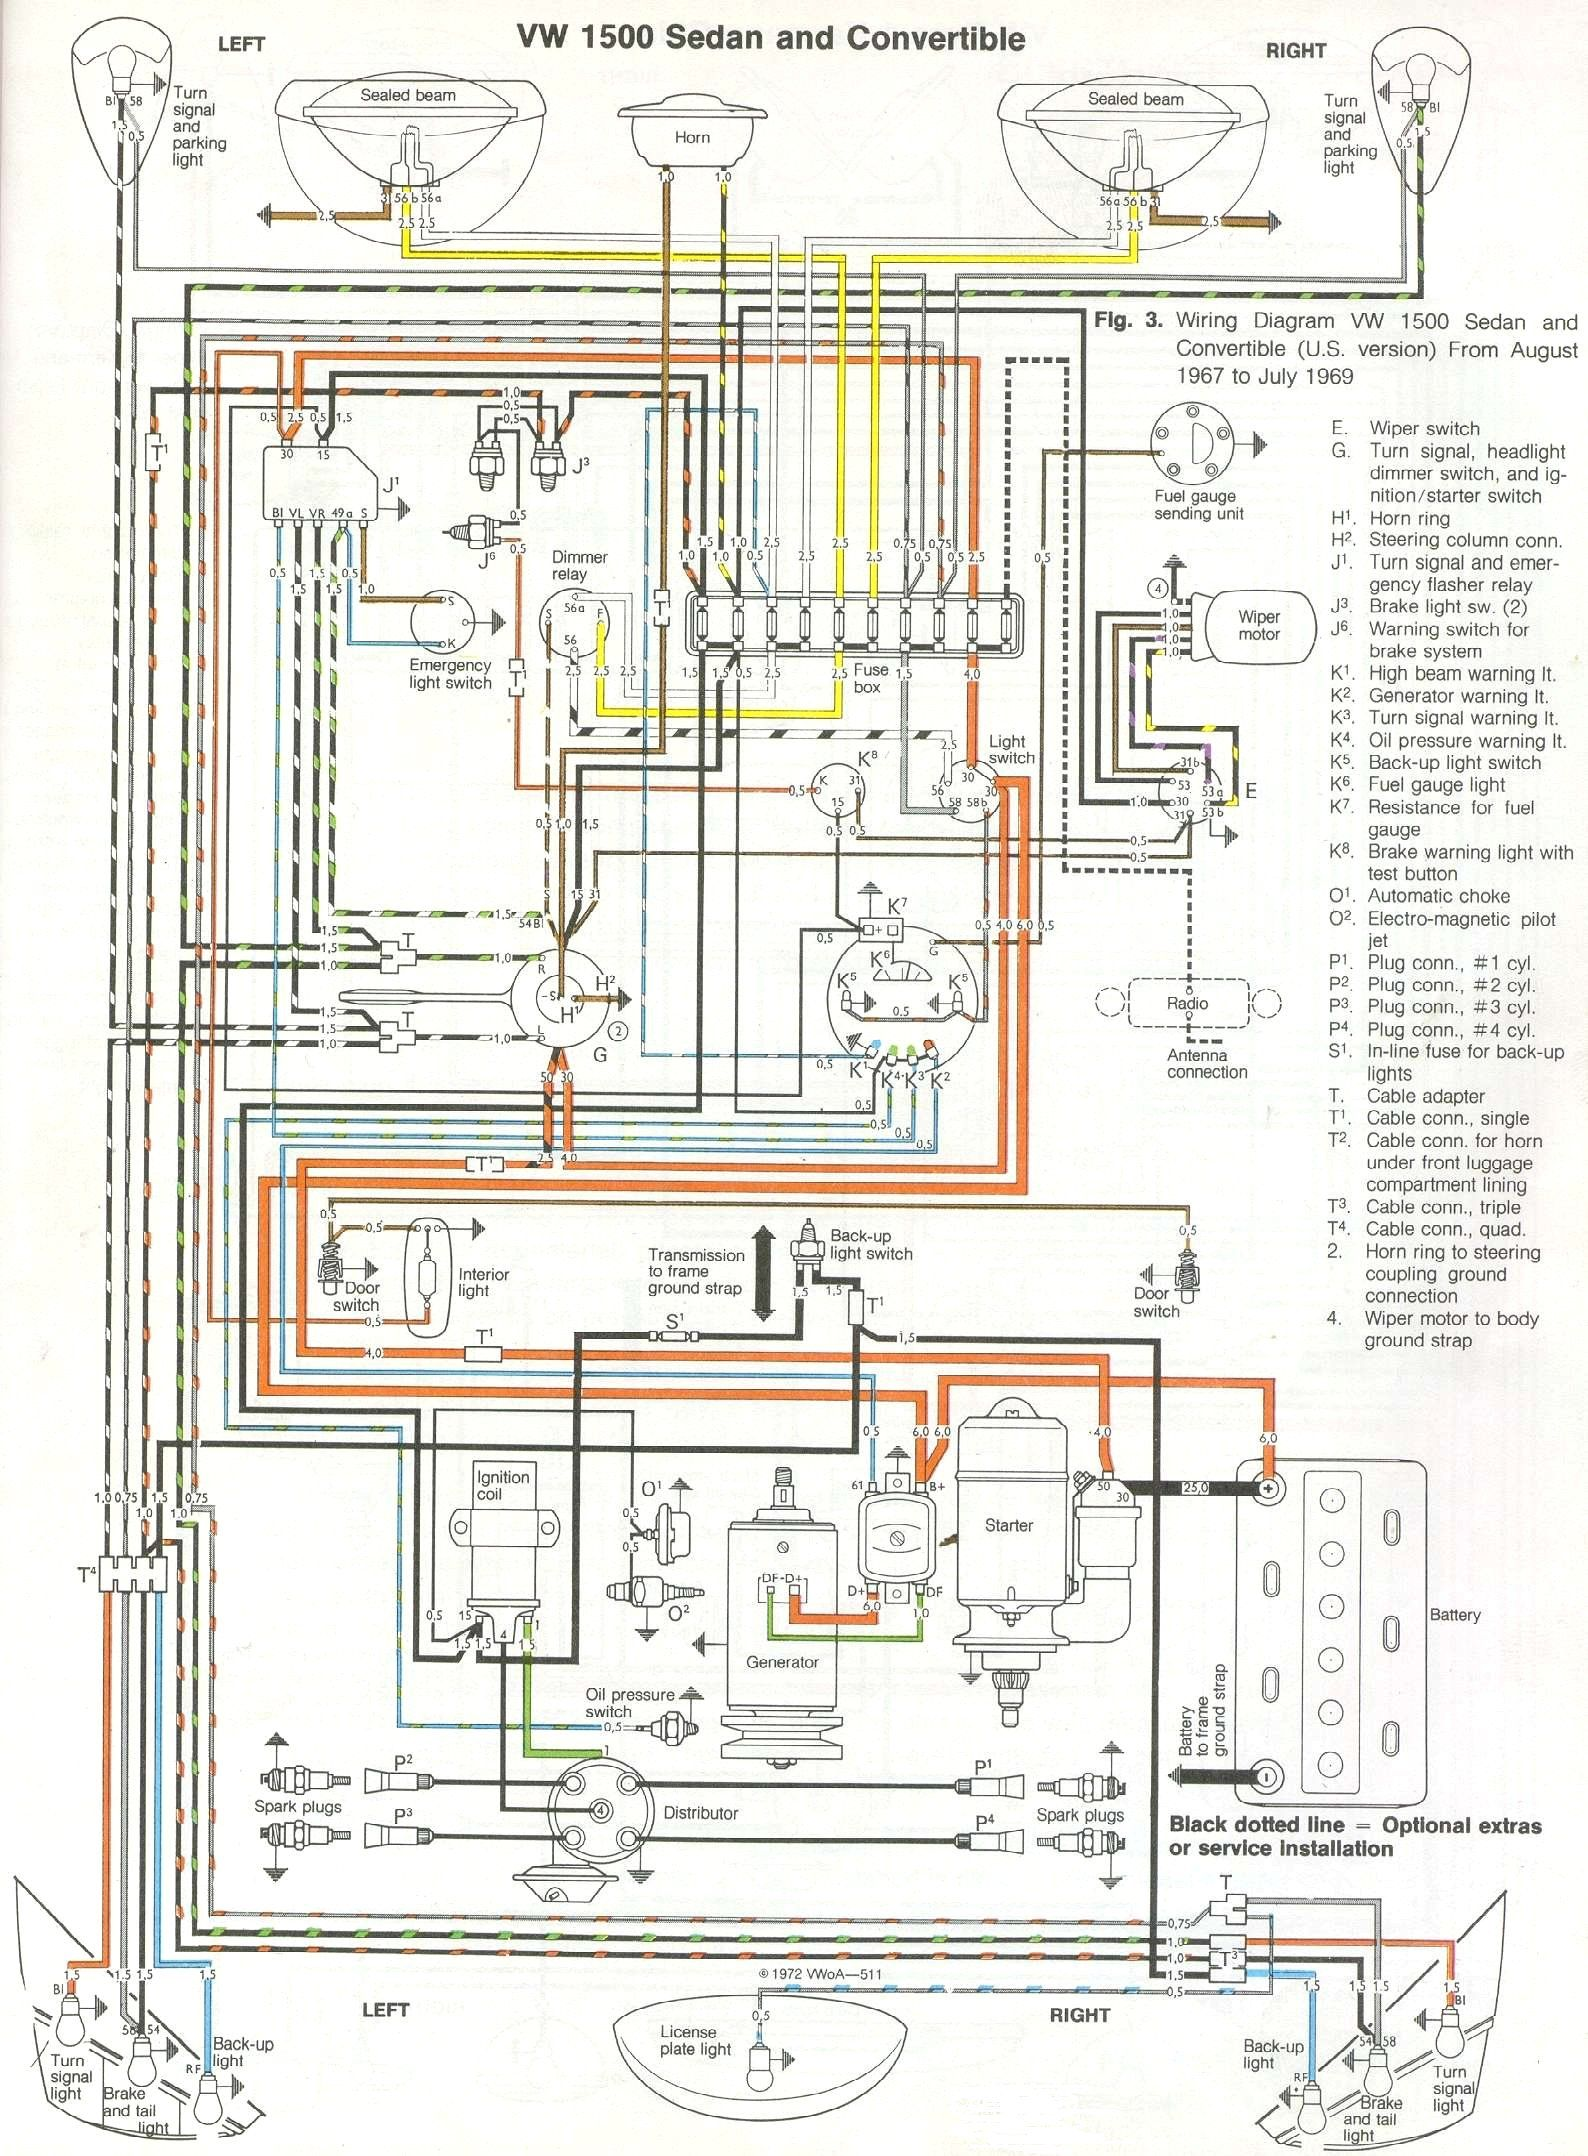 1968 69 beetle wiring diagram usa thegoldenbug com engine vw1968 69 beetle wiring diagram [ 1588 x 2156 Pixel ]